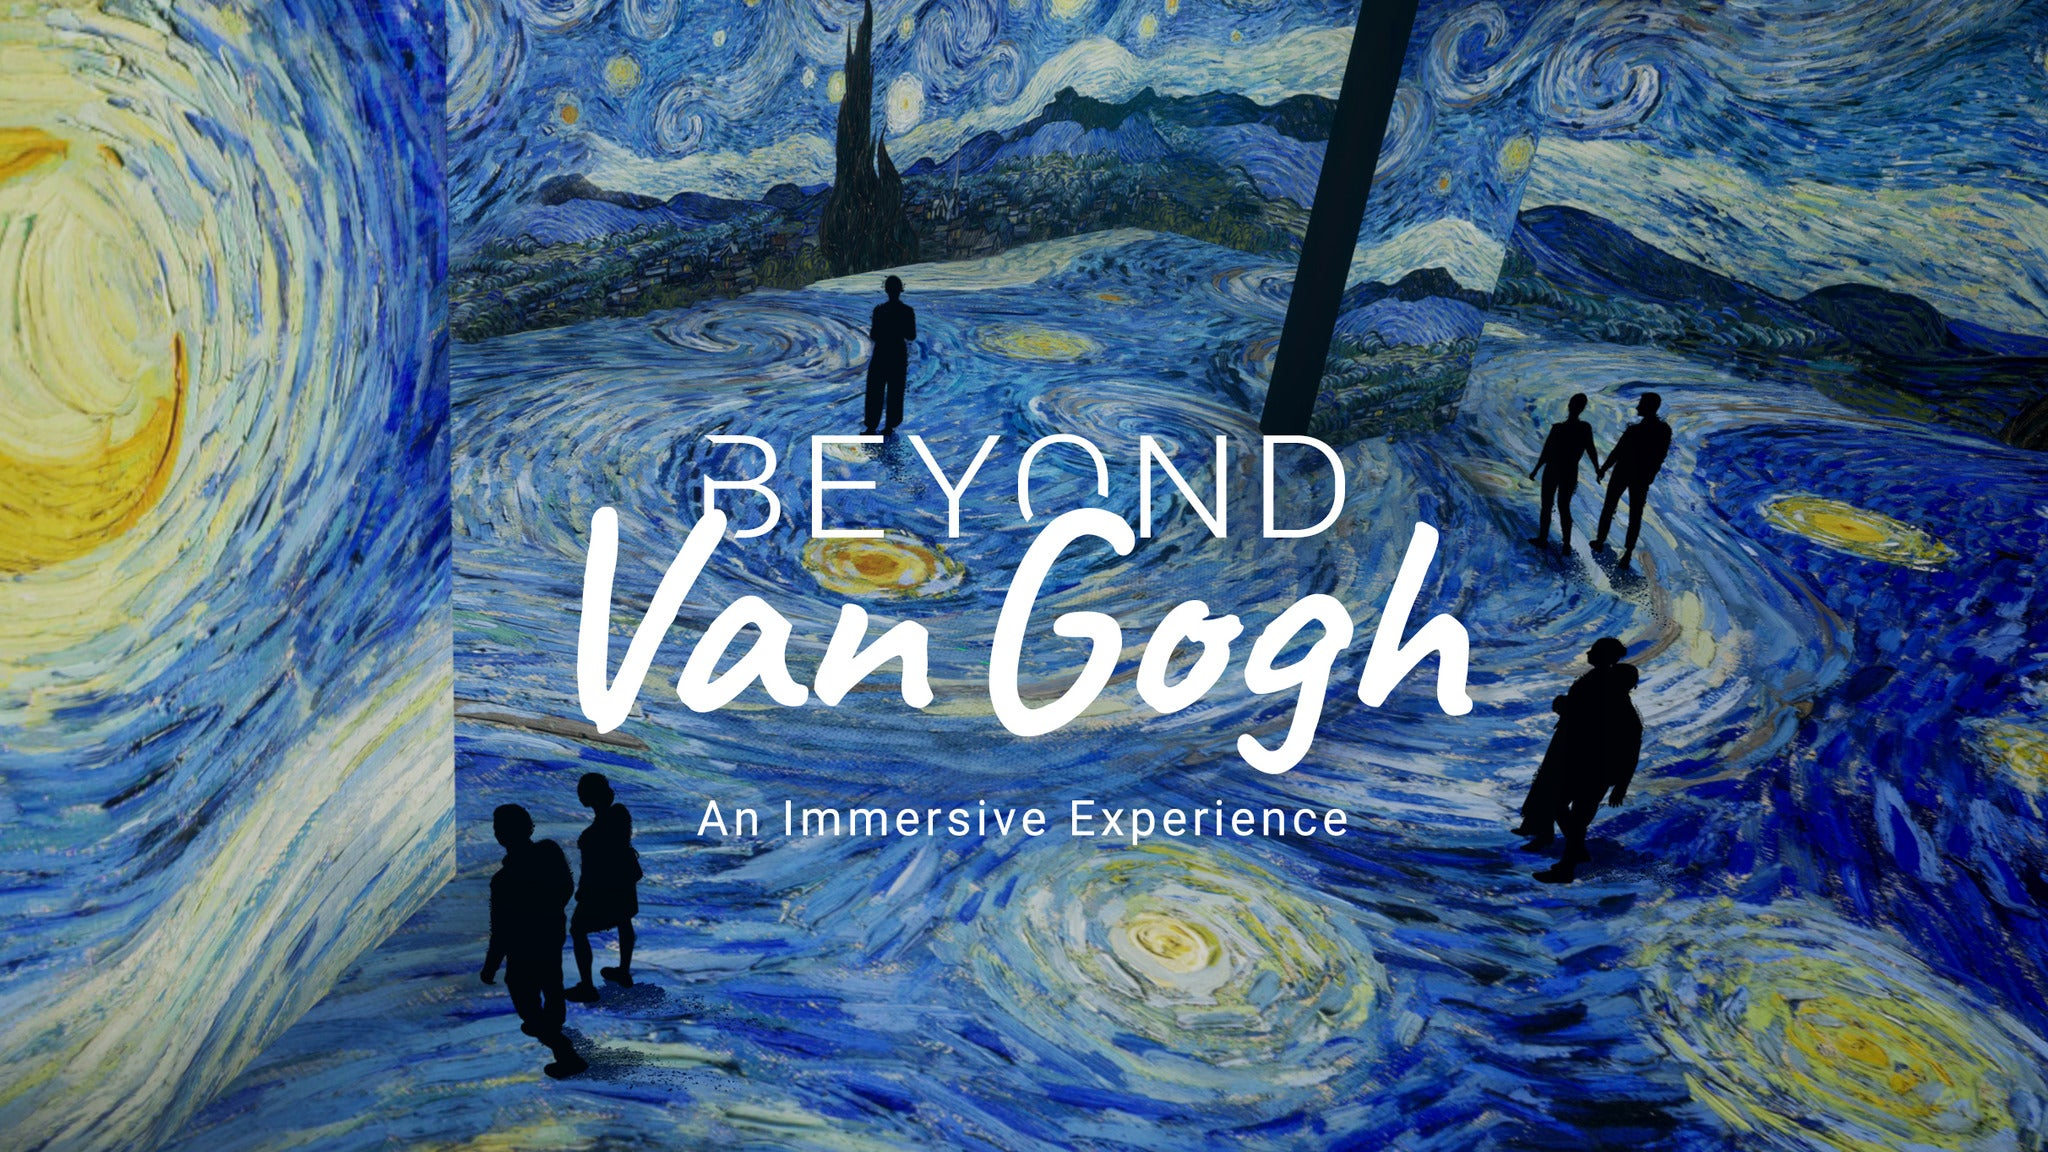 Beyond Van Gogh  - February 10th at Del Mar Fairgrounds